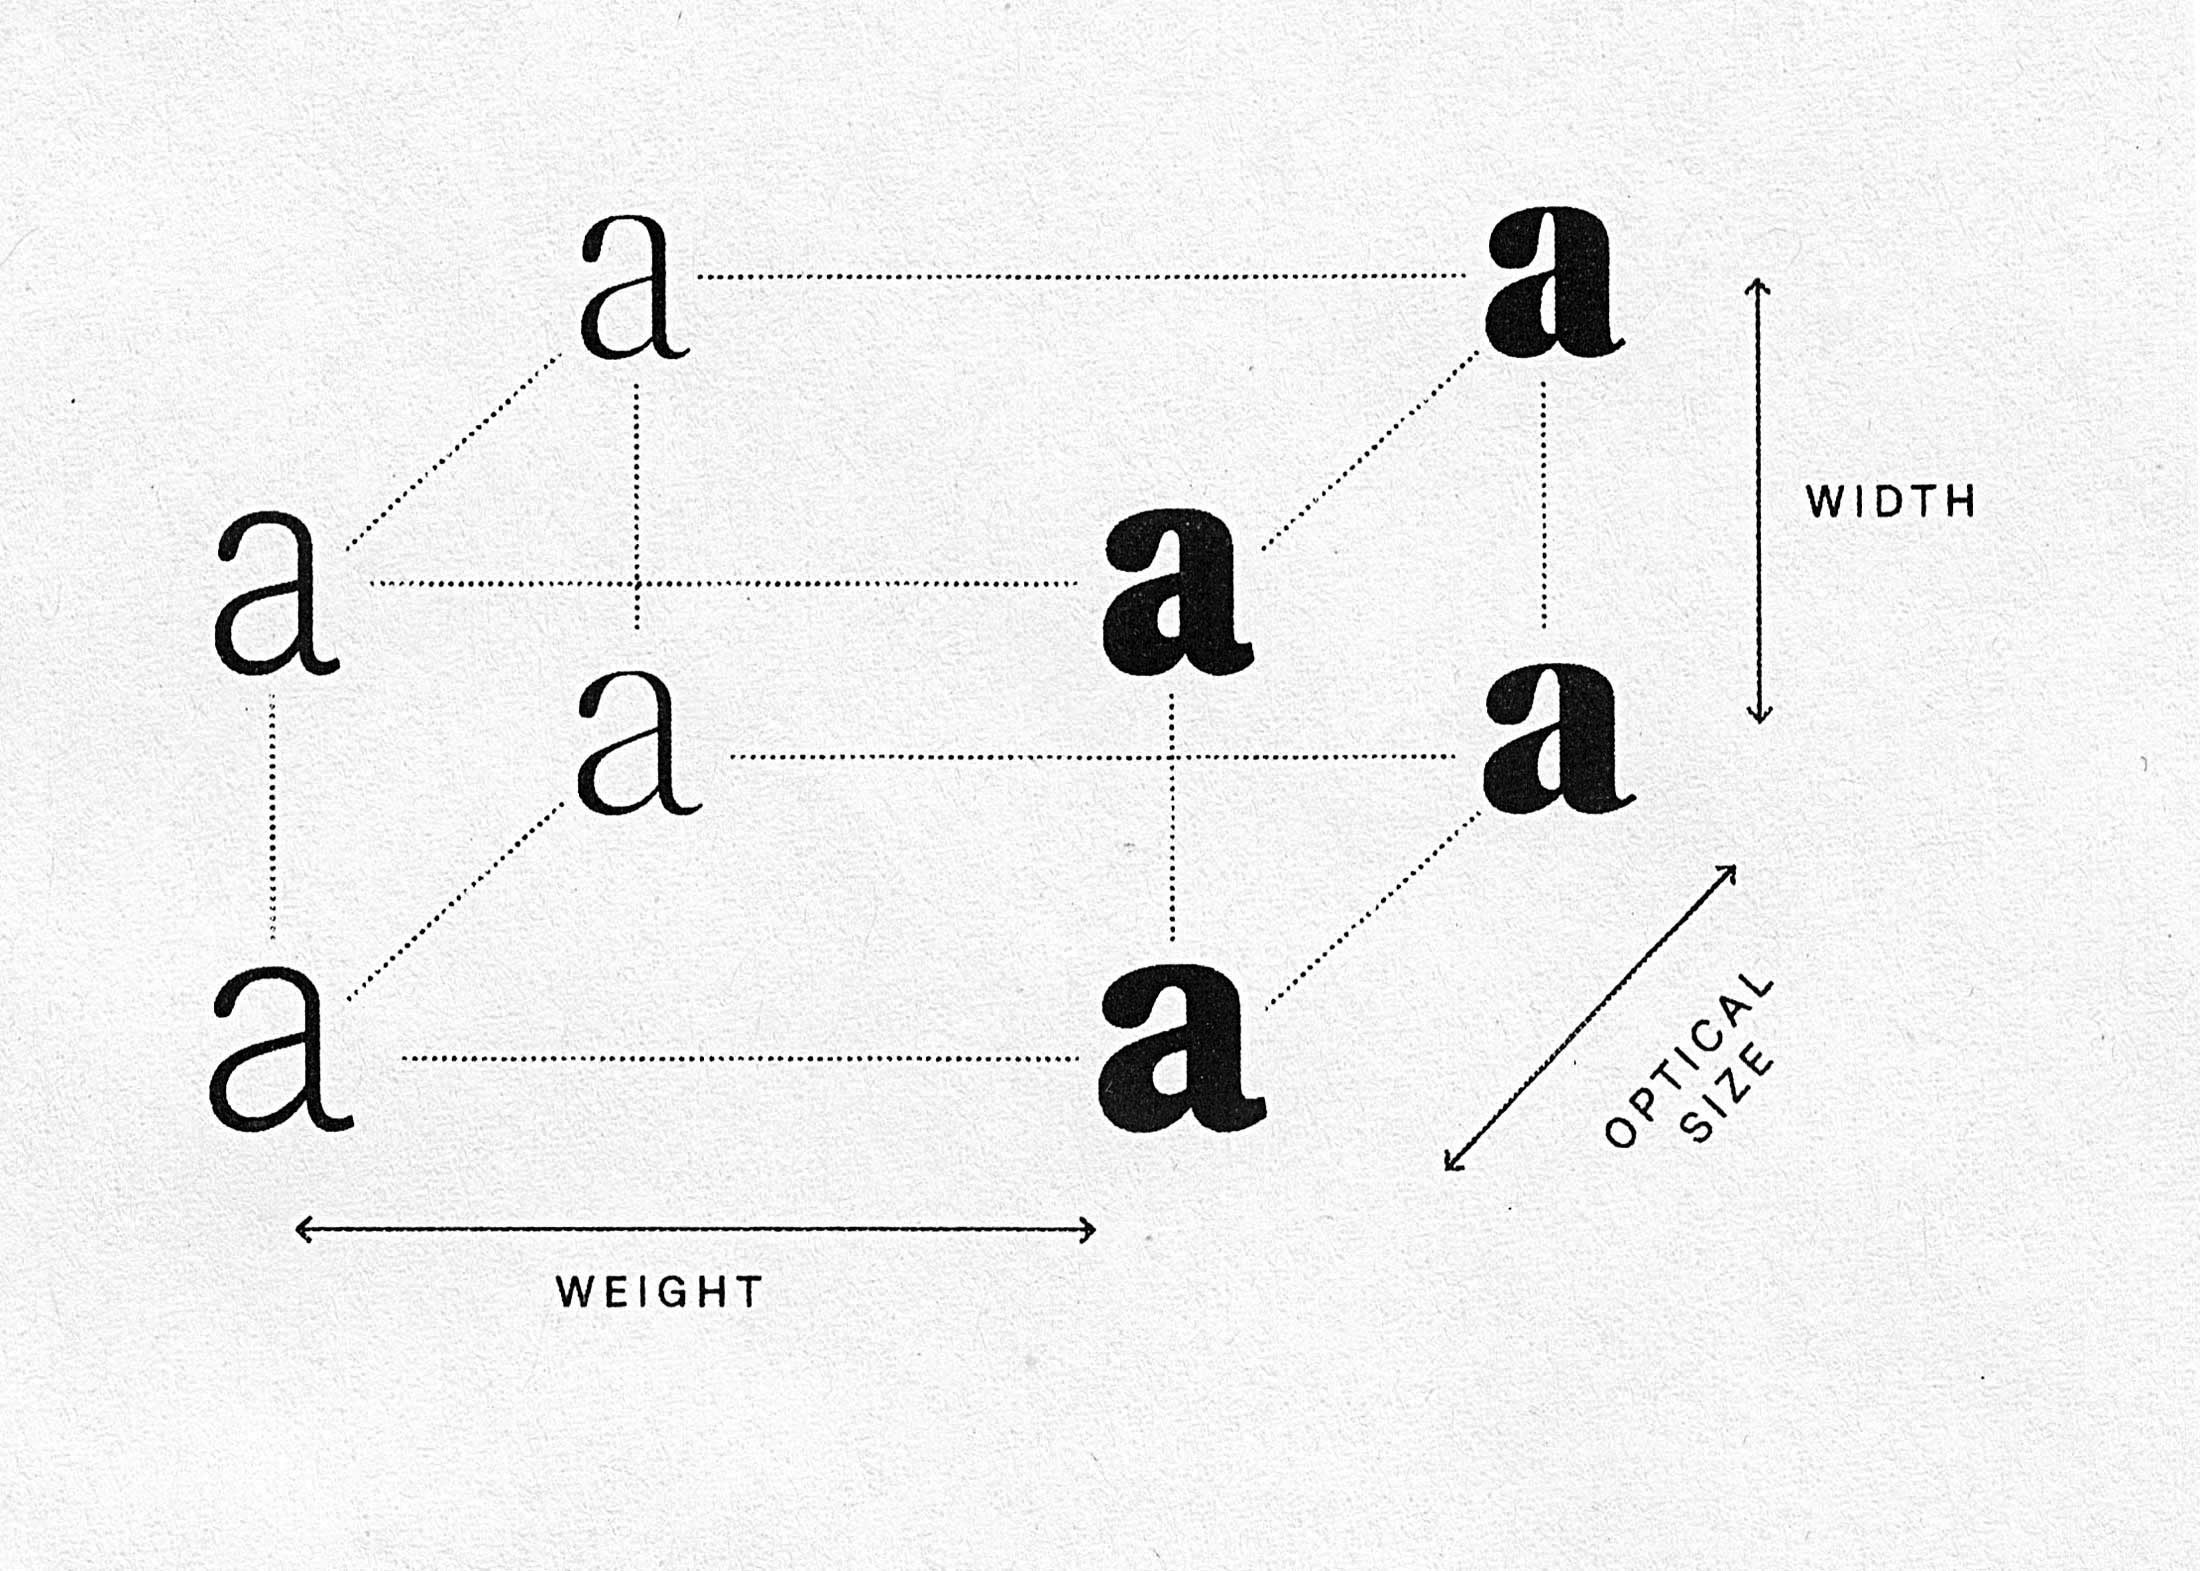 The upcoming font Spezia Serif with 3 axes; weight, width and optical size.